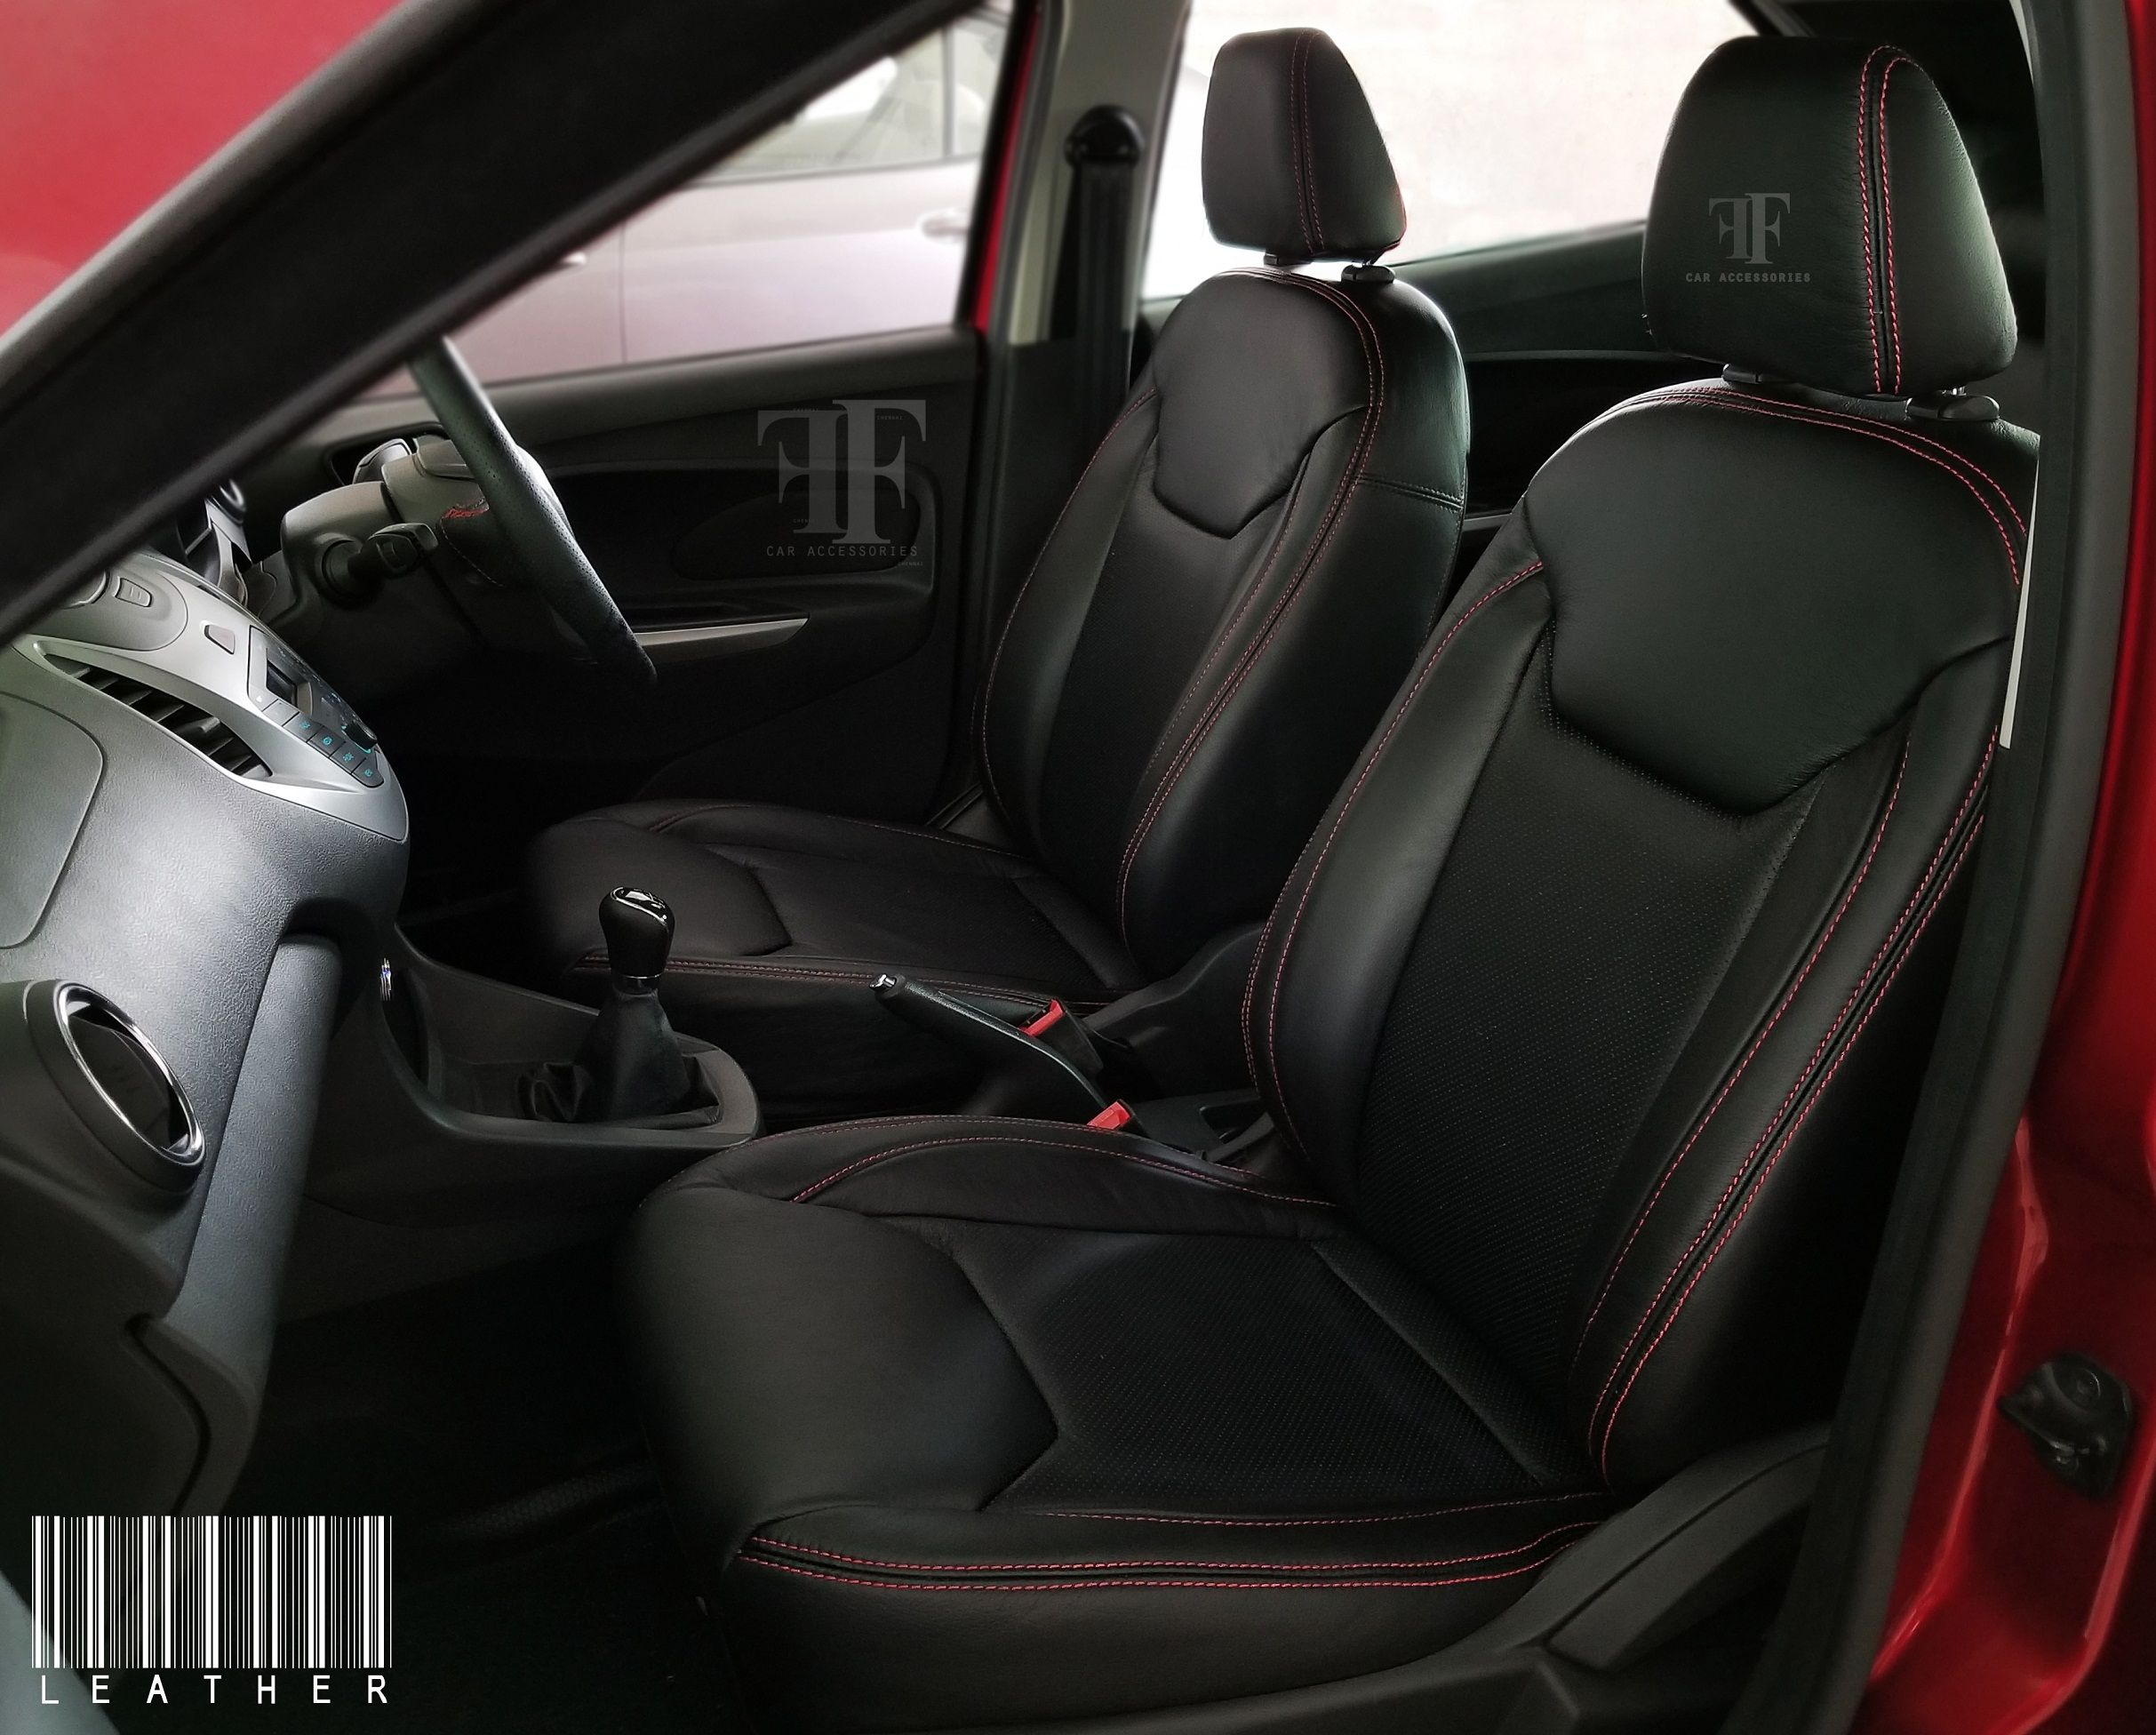 Visible Red Stitches Gives The Sporty Look This Seats Team Ff Car